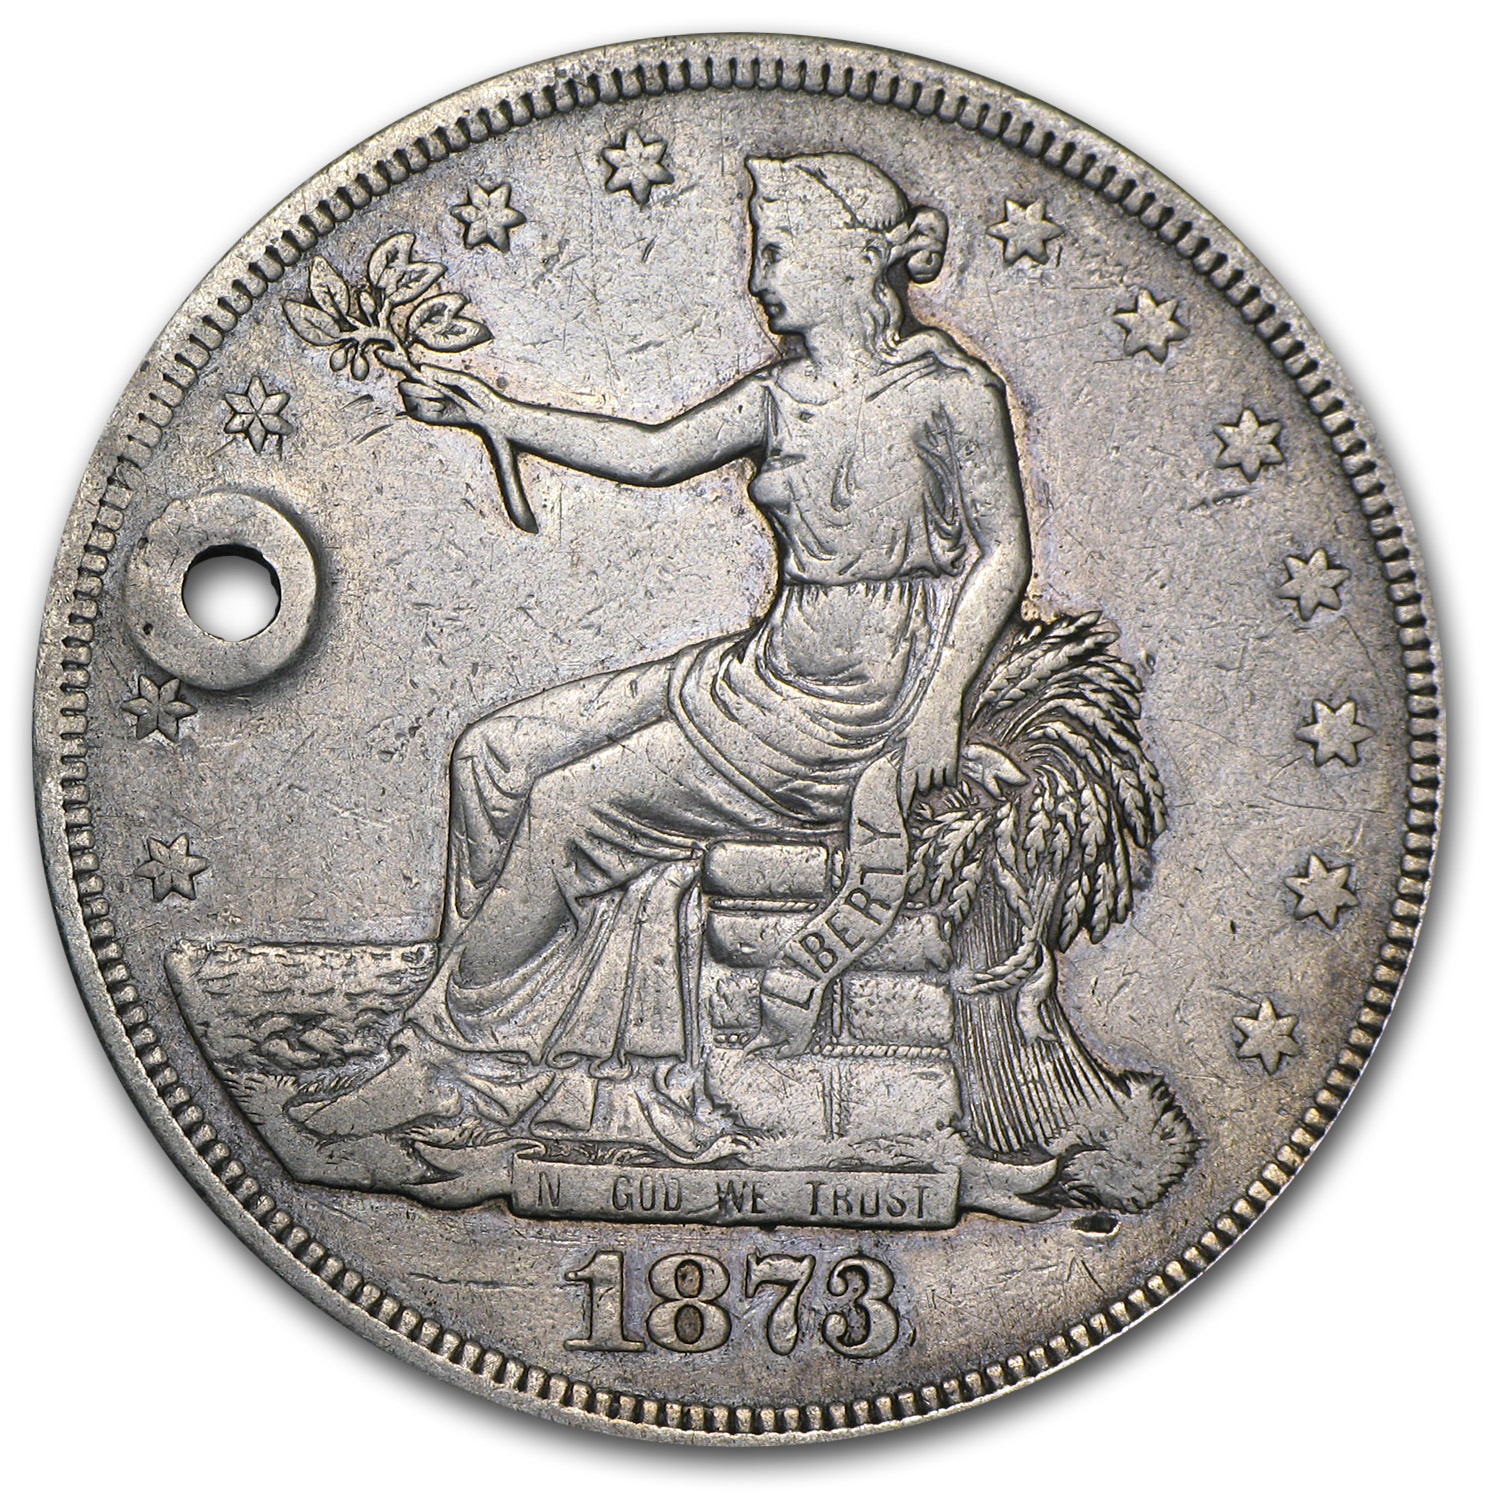 1873-CC Trade Dollar - Very Fine Details - Holed